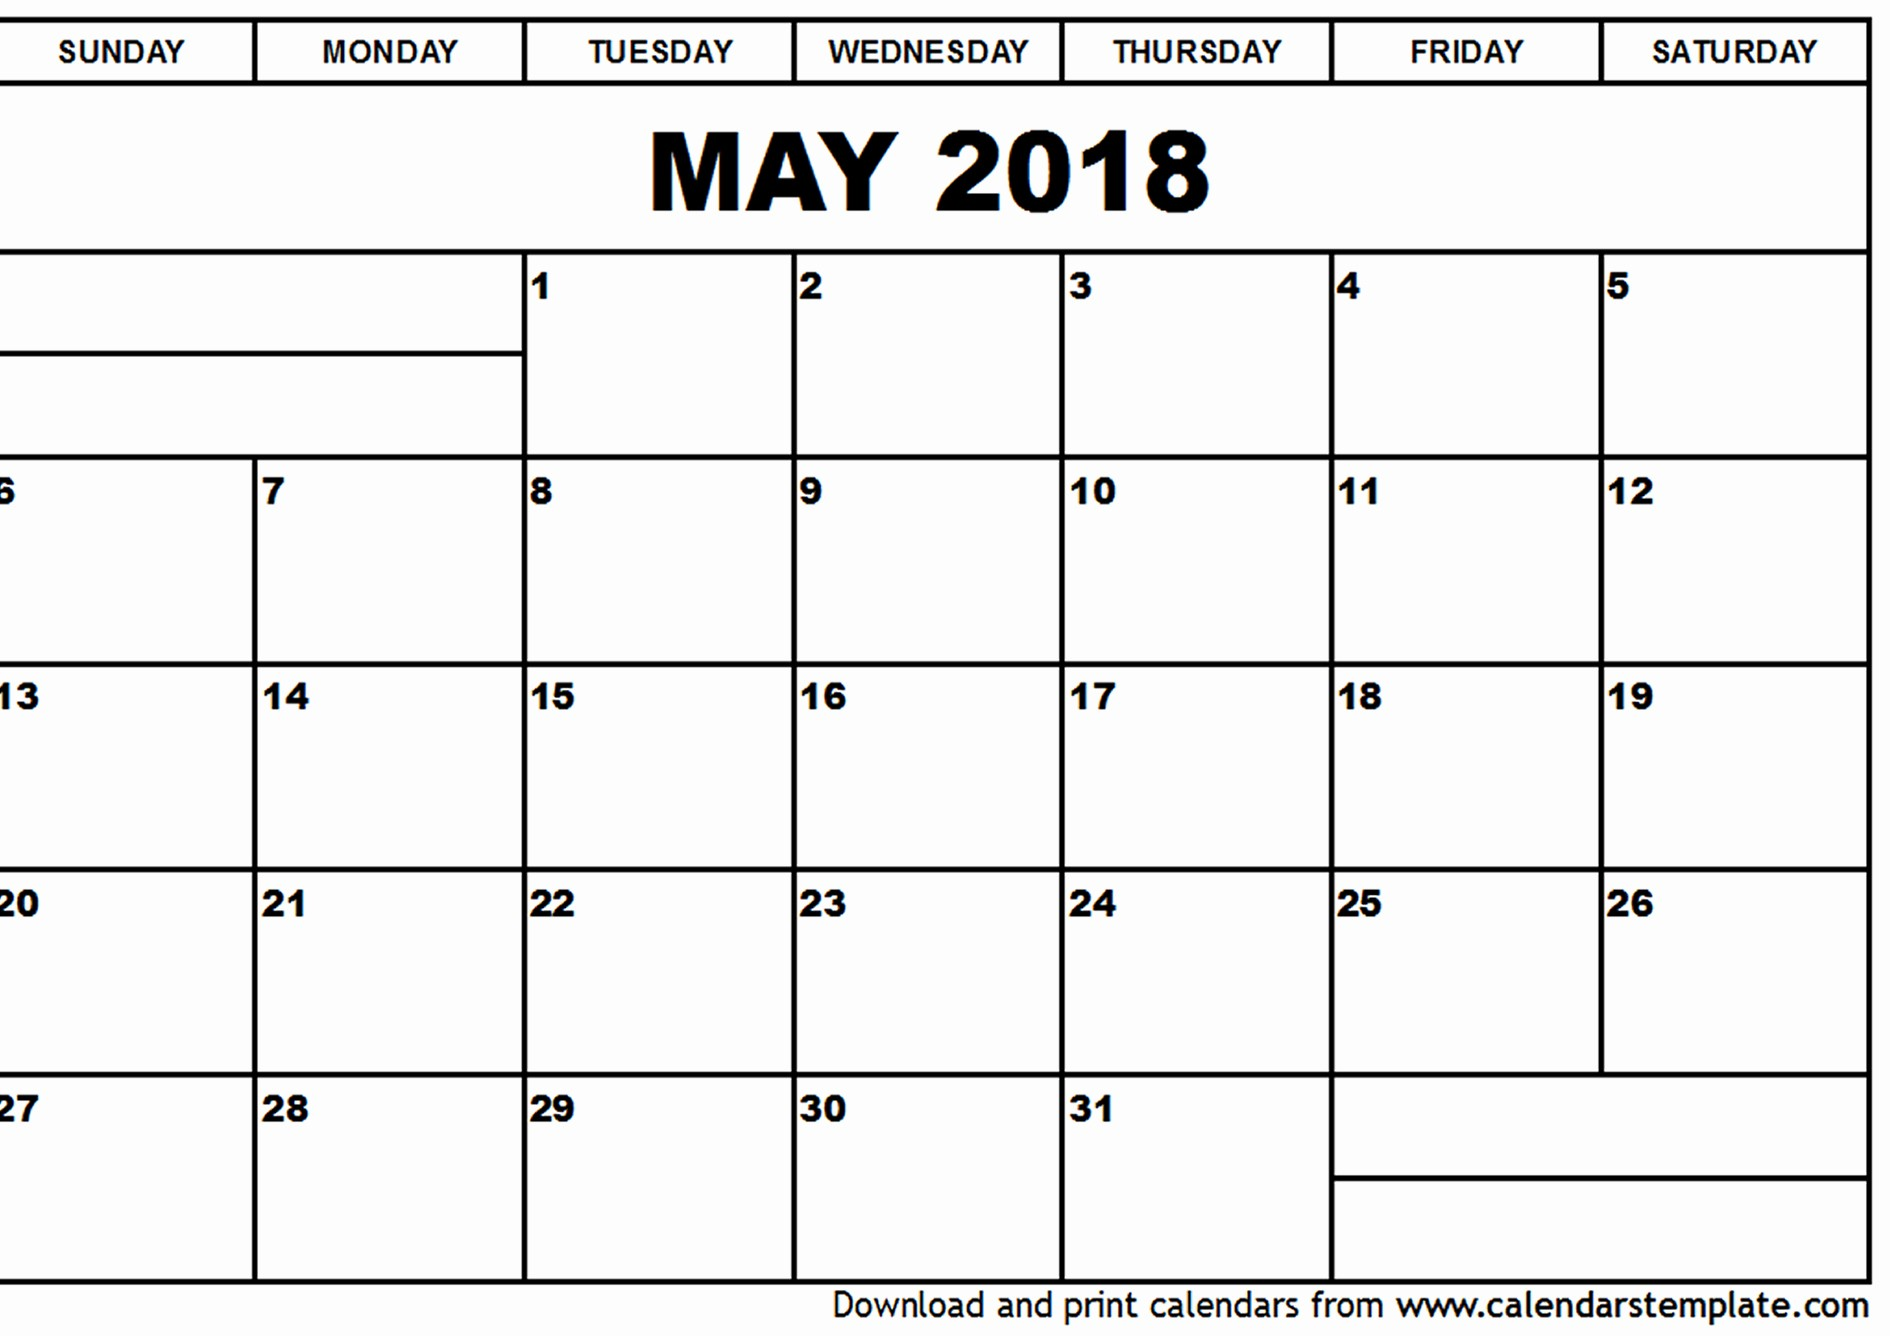 Free May 2018 Calendar Template Beautiful May 2018 Calendar Template